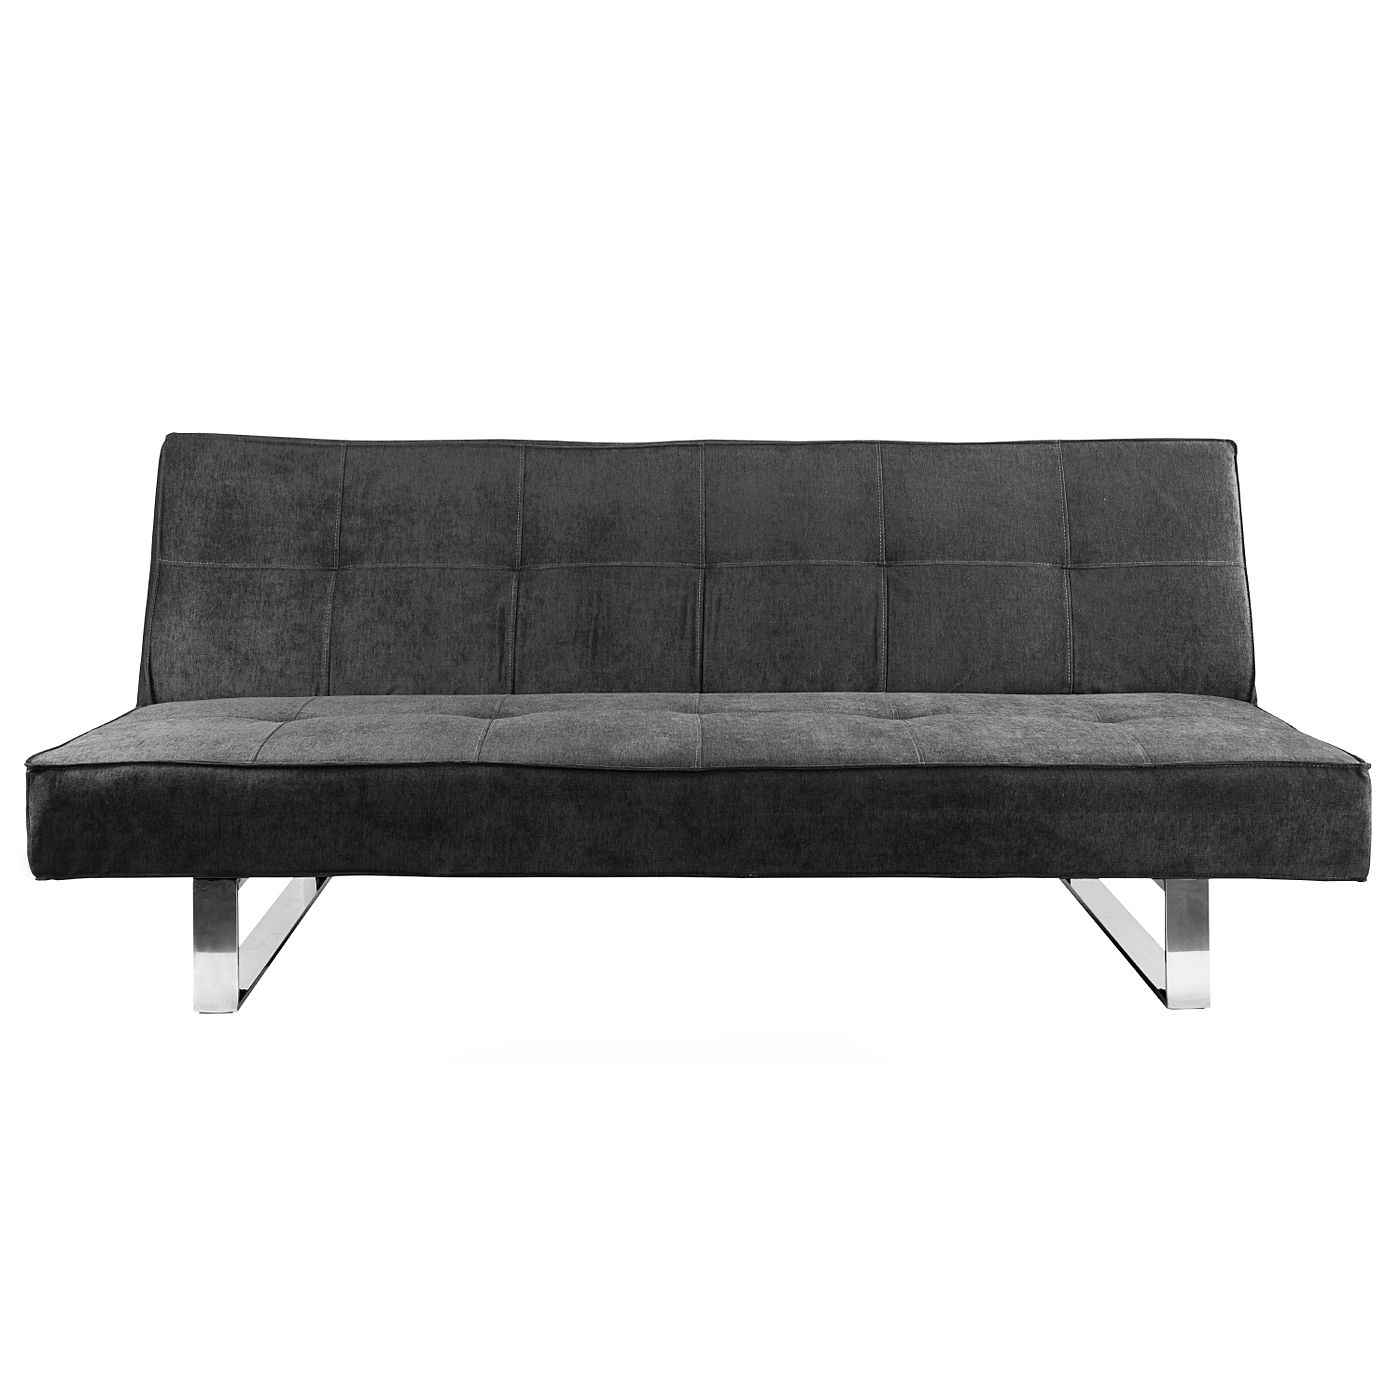 Trent Sofabed in Charcoal | Sofas & Armchairs | ASDA ...